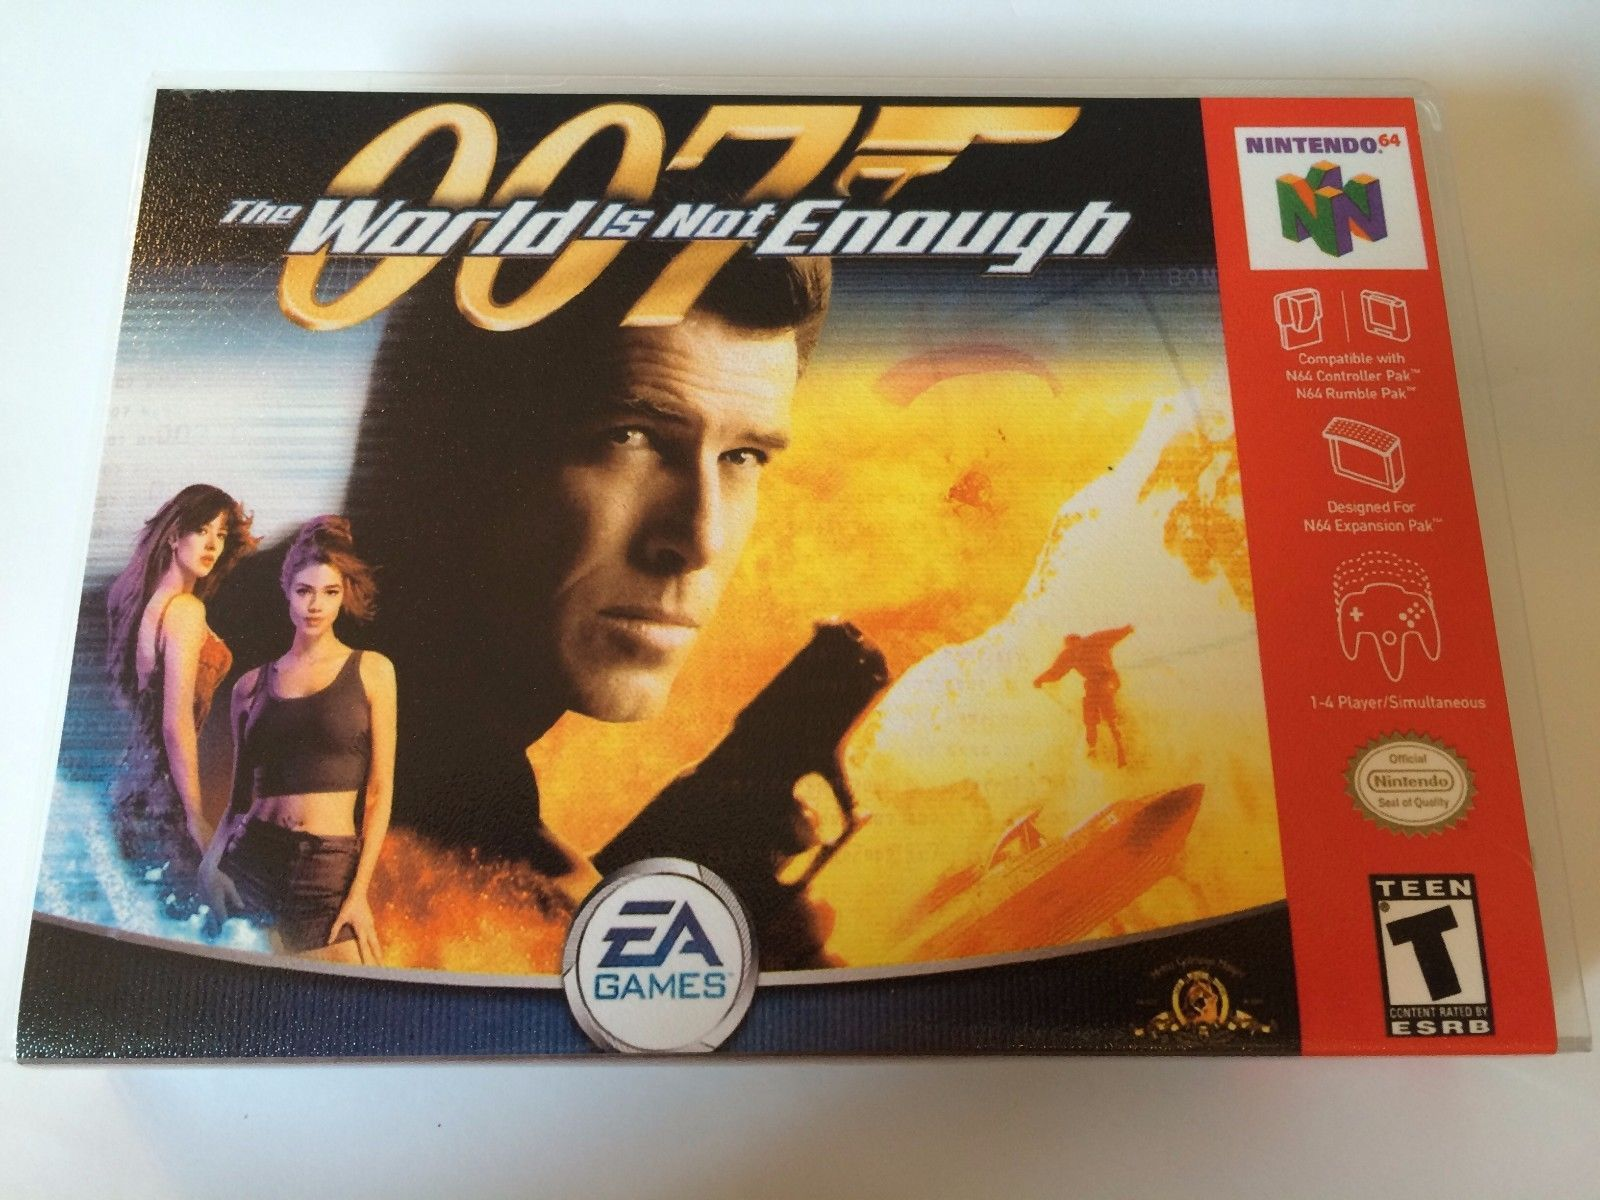 007 The World is Not Enough - Nintendo 64 - Replacement Case - No Game